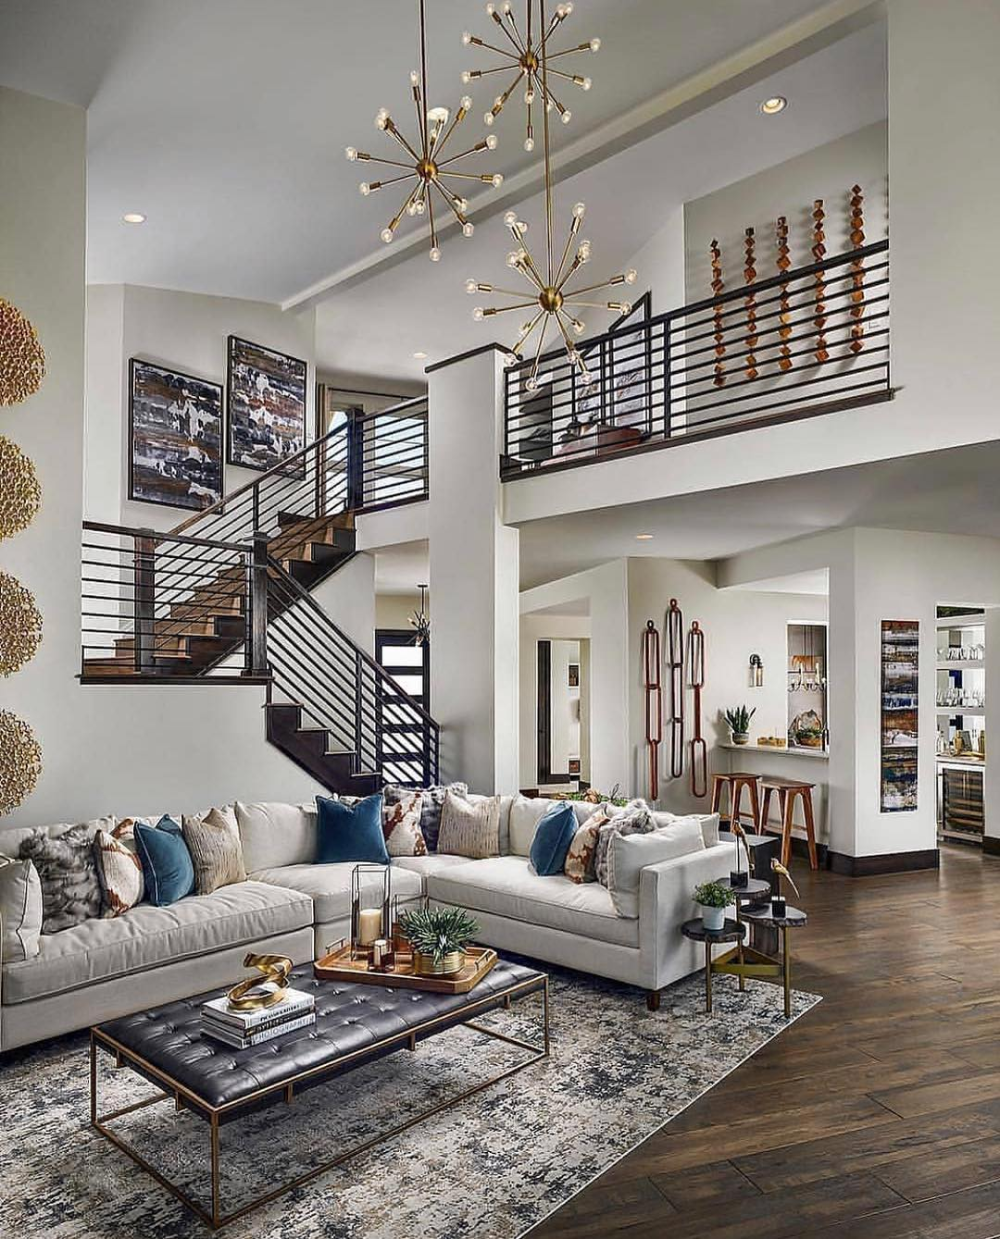 Great Ideas For Beginners In Living Room Decoration 2019 Page 26 Of 39 My Blog Cheap Home Decor Online Luxury Home Decor Living Room Photos